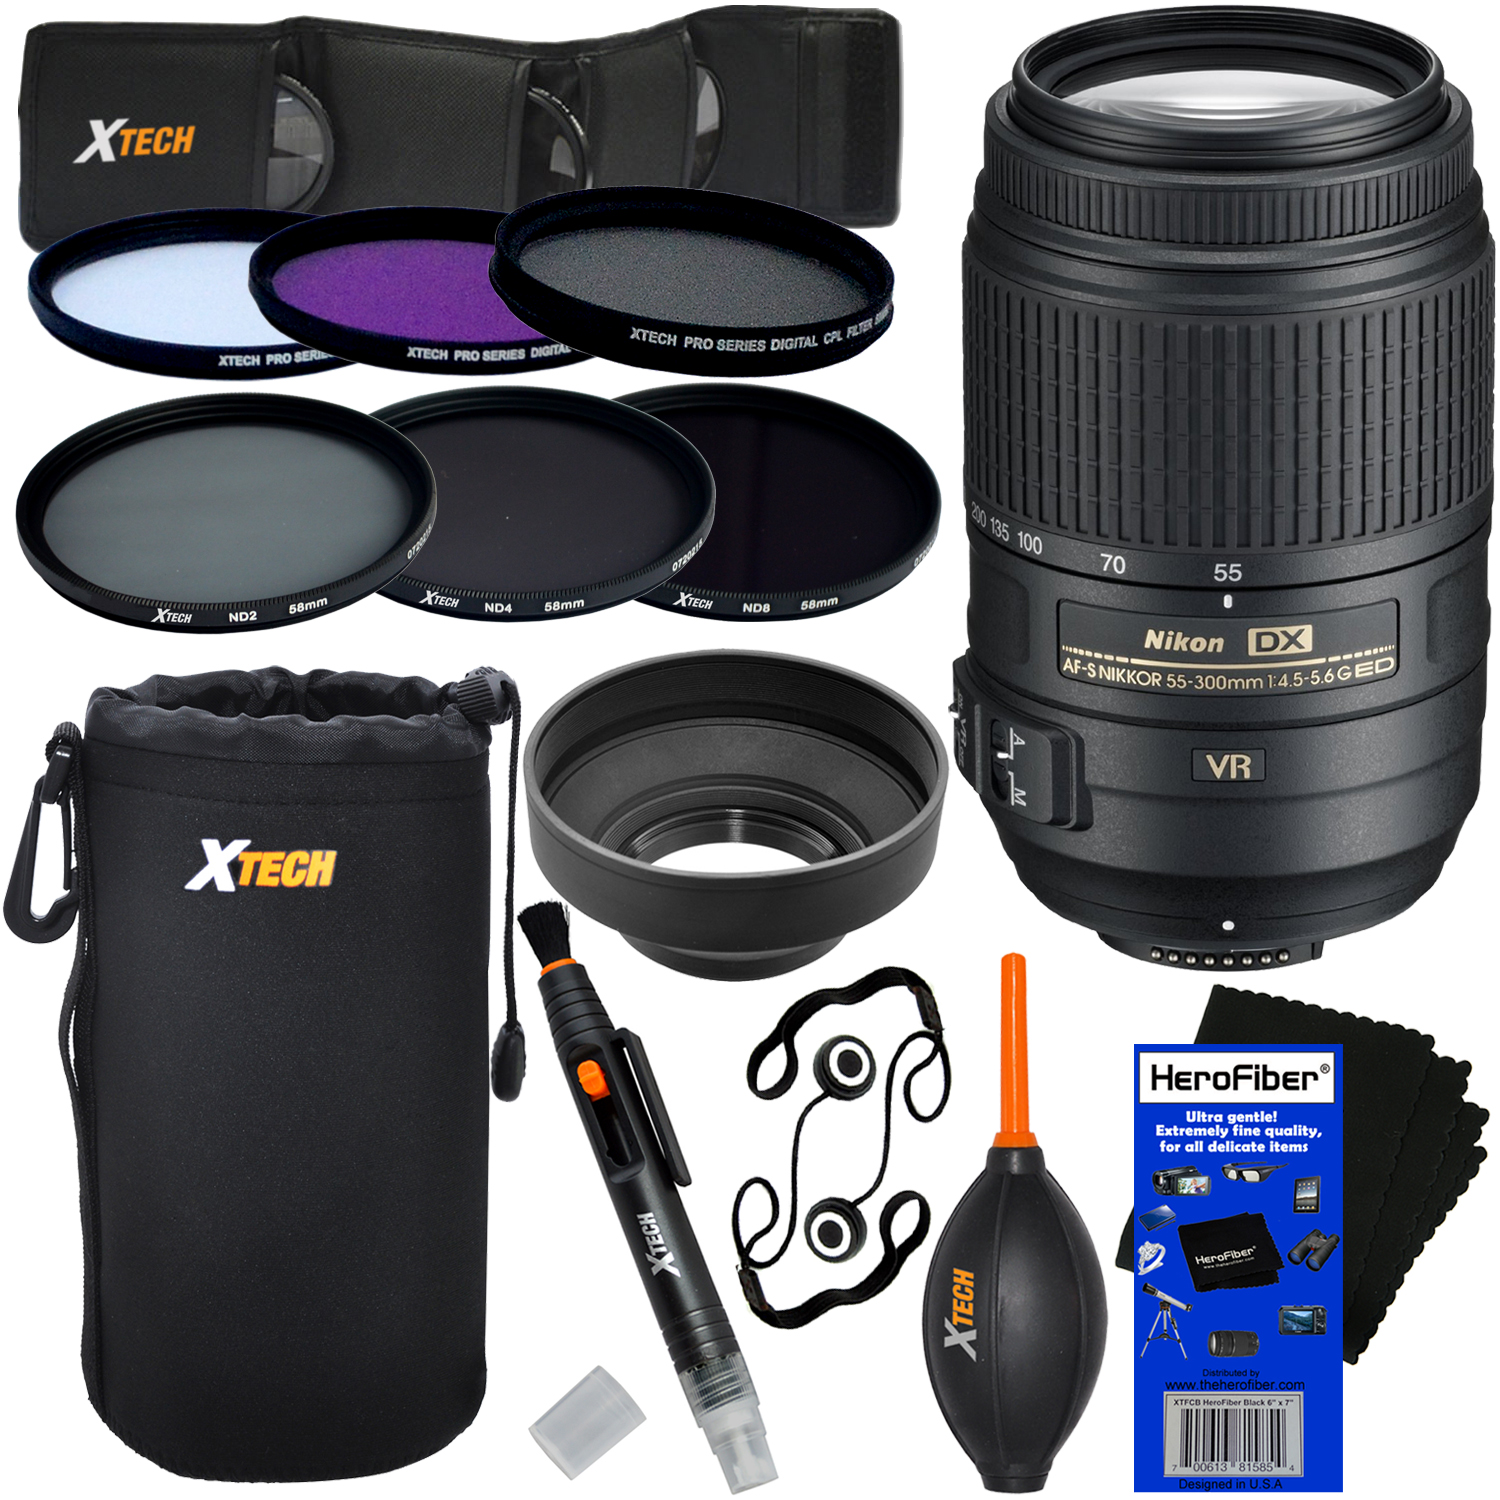 Nikon AF-S DX NIKKOR 55-300mm f/4.5-5.6G ED VR Zoom Lens for Nikon DSLR Cameras + ND Filters ND2, ND4, ND8 + 11pc Deluxe Accessory Kit w/HeroFiber Cleaning Cloth